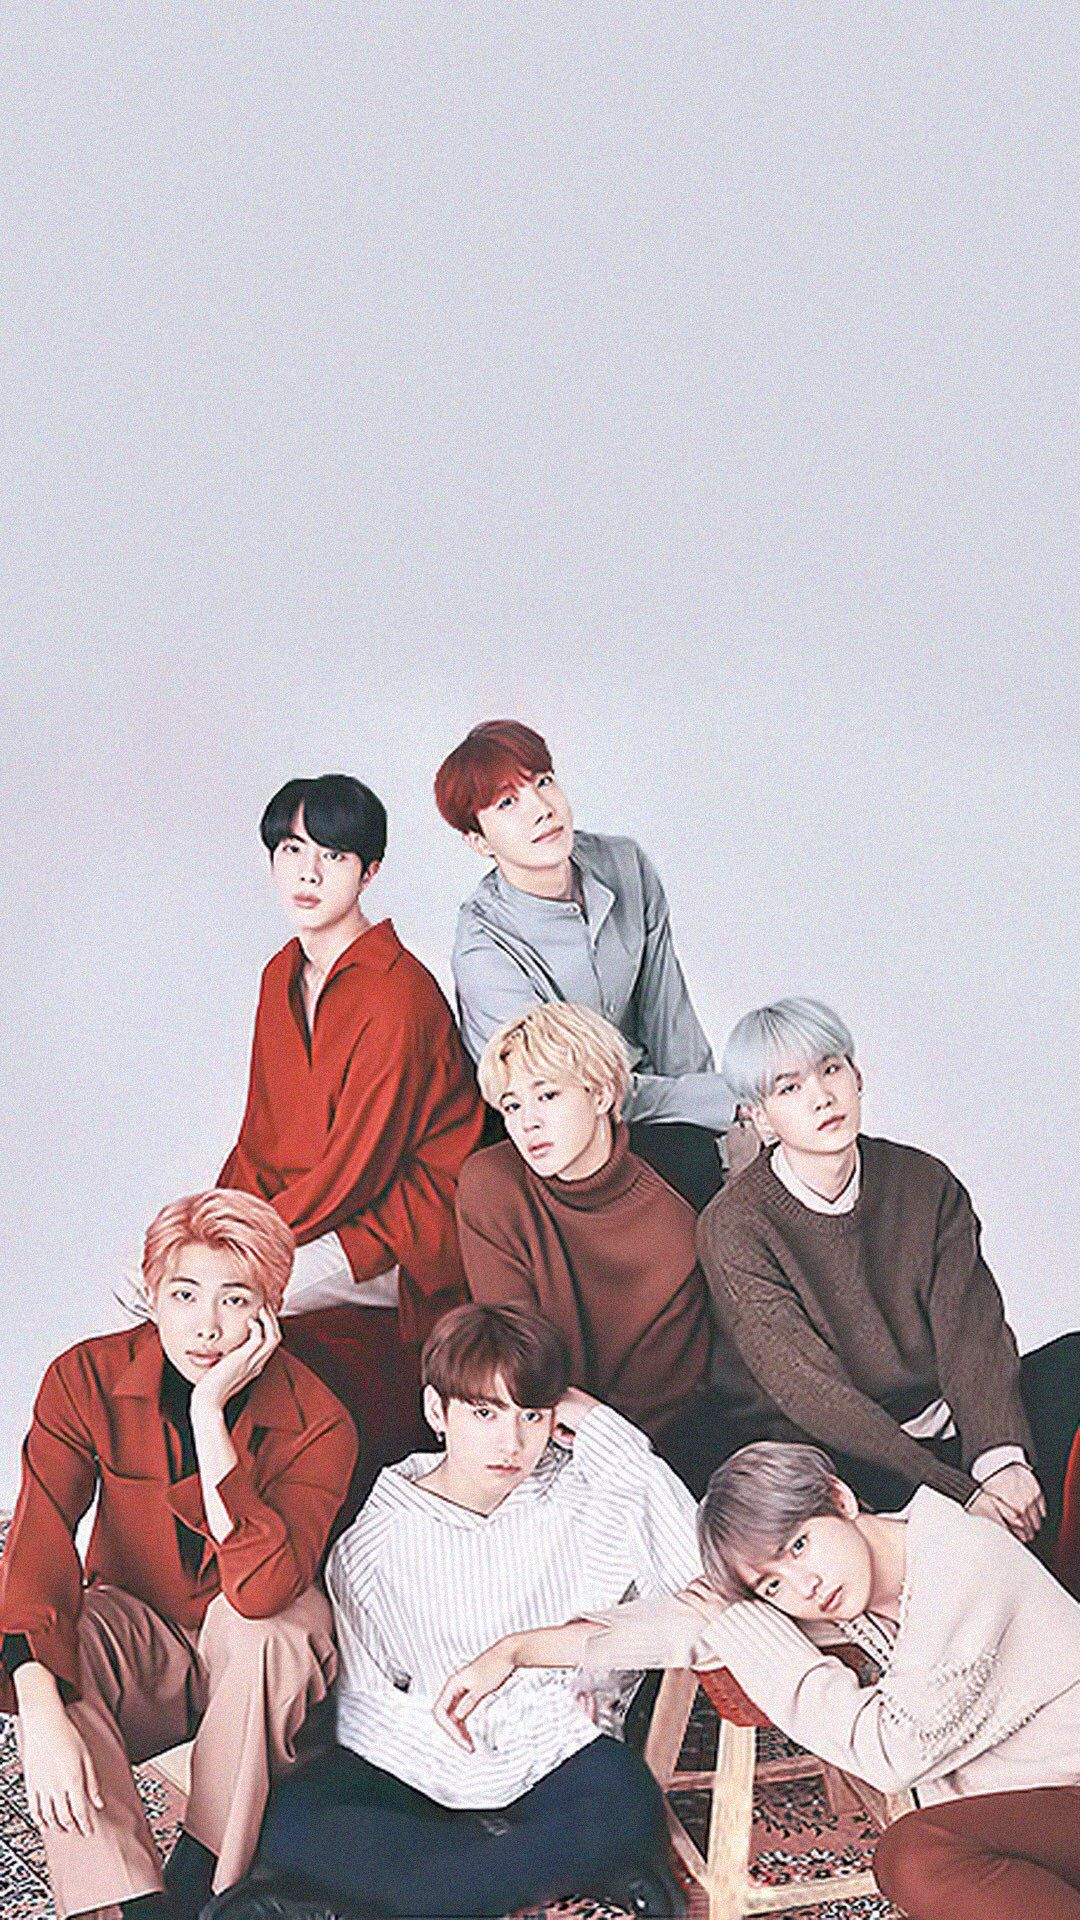 Bts afrenchnative bts in 2019 pinterest bts bts - Amazing wallpapers for boys ...